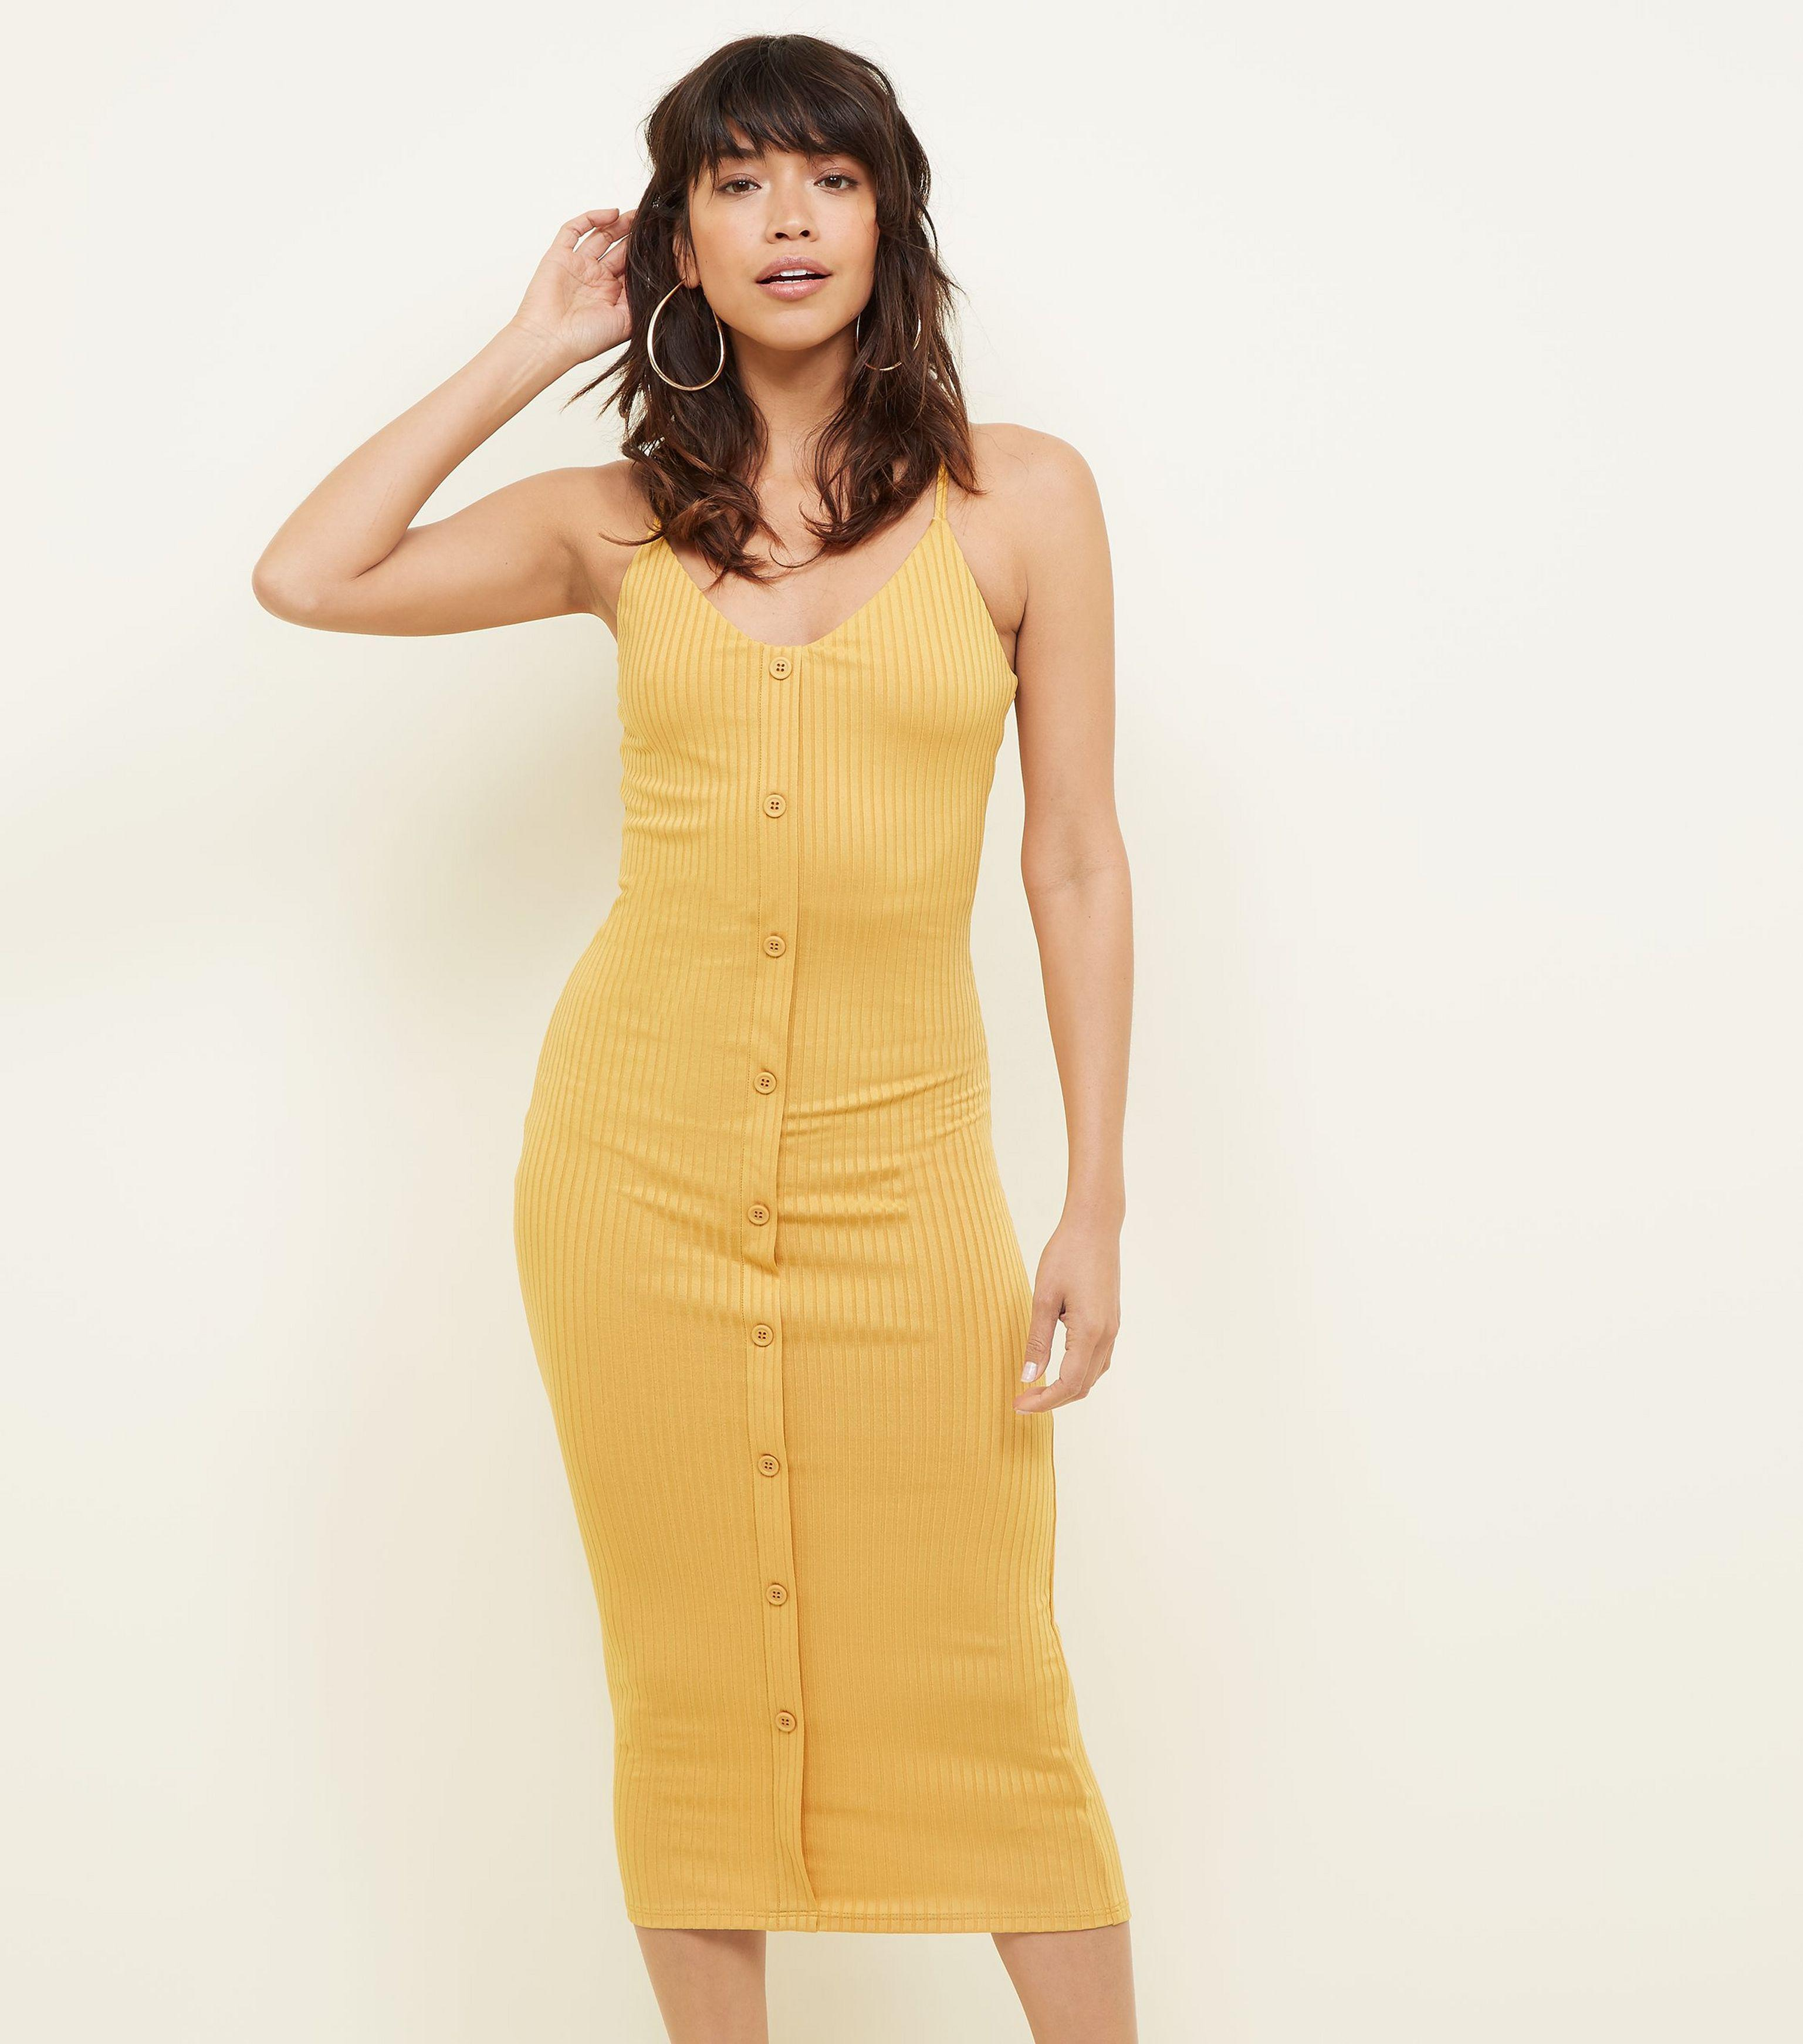 385f55c9e77 New Look Mustard Ribbed Jersey Button Front Bodycon Dress in Yellow ...